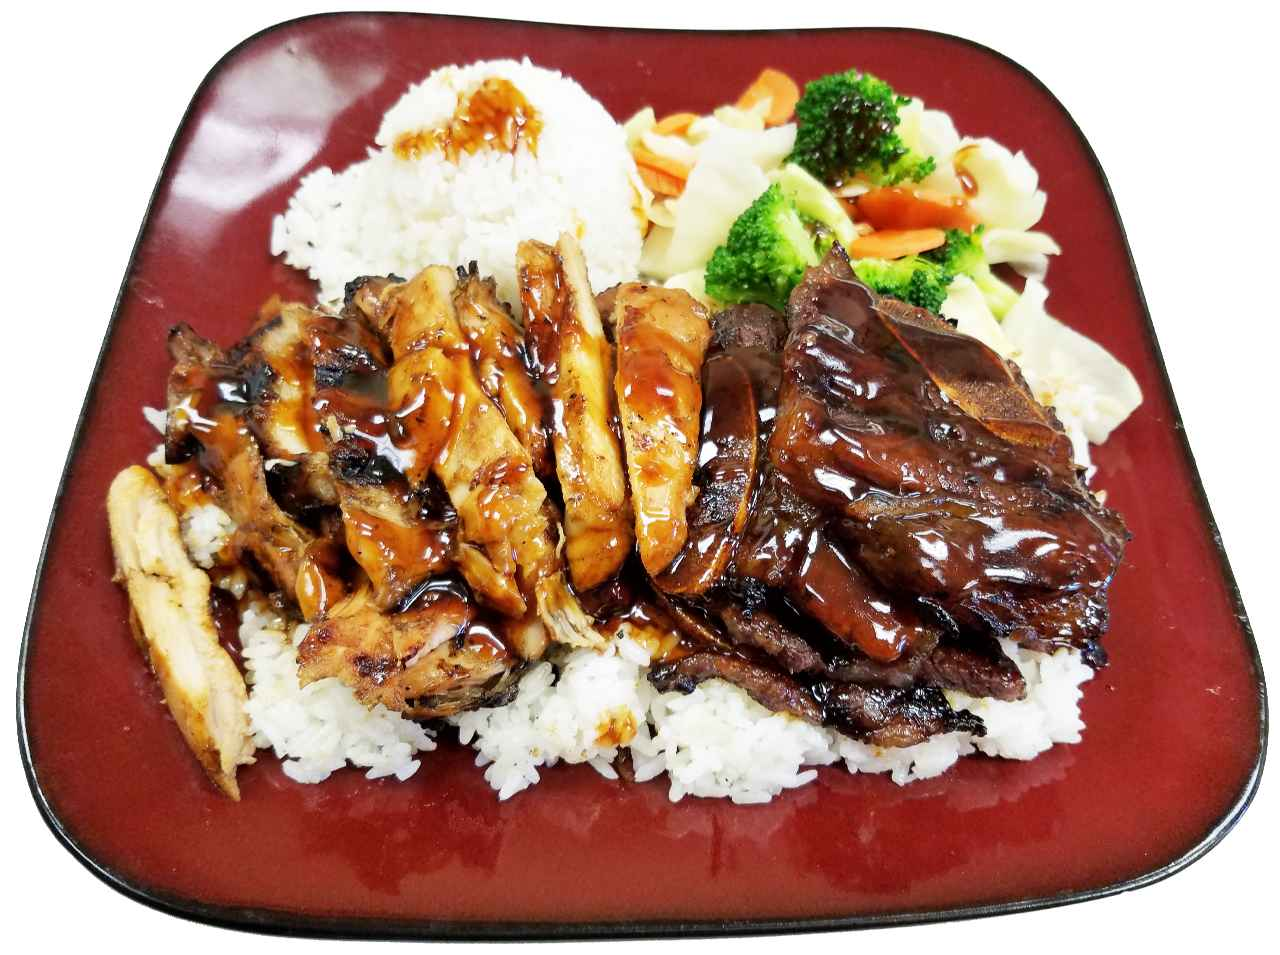 12. Teriyaki Chicken with Beef Short Ribs